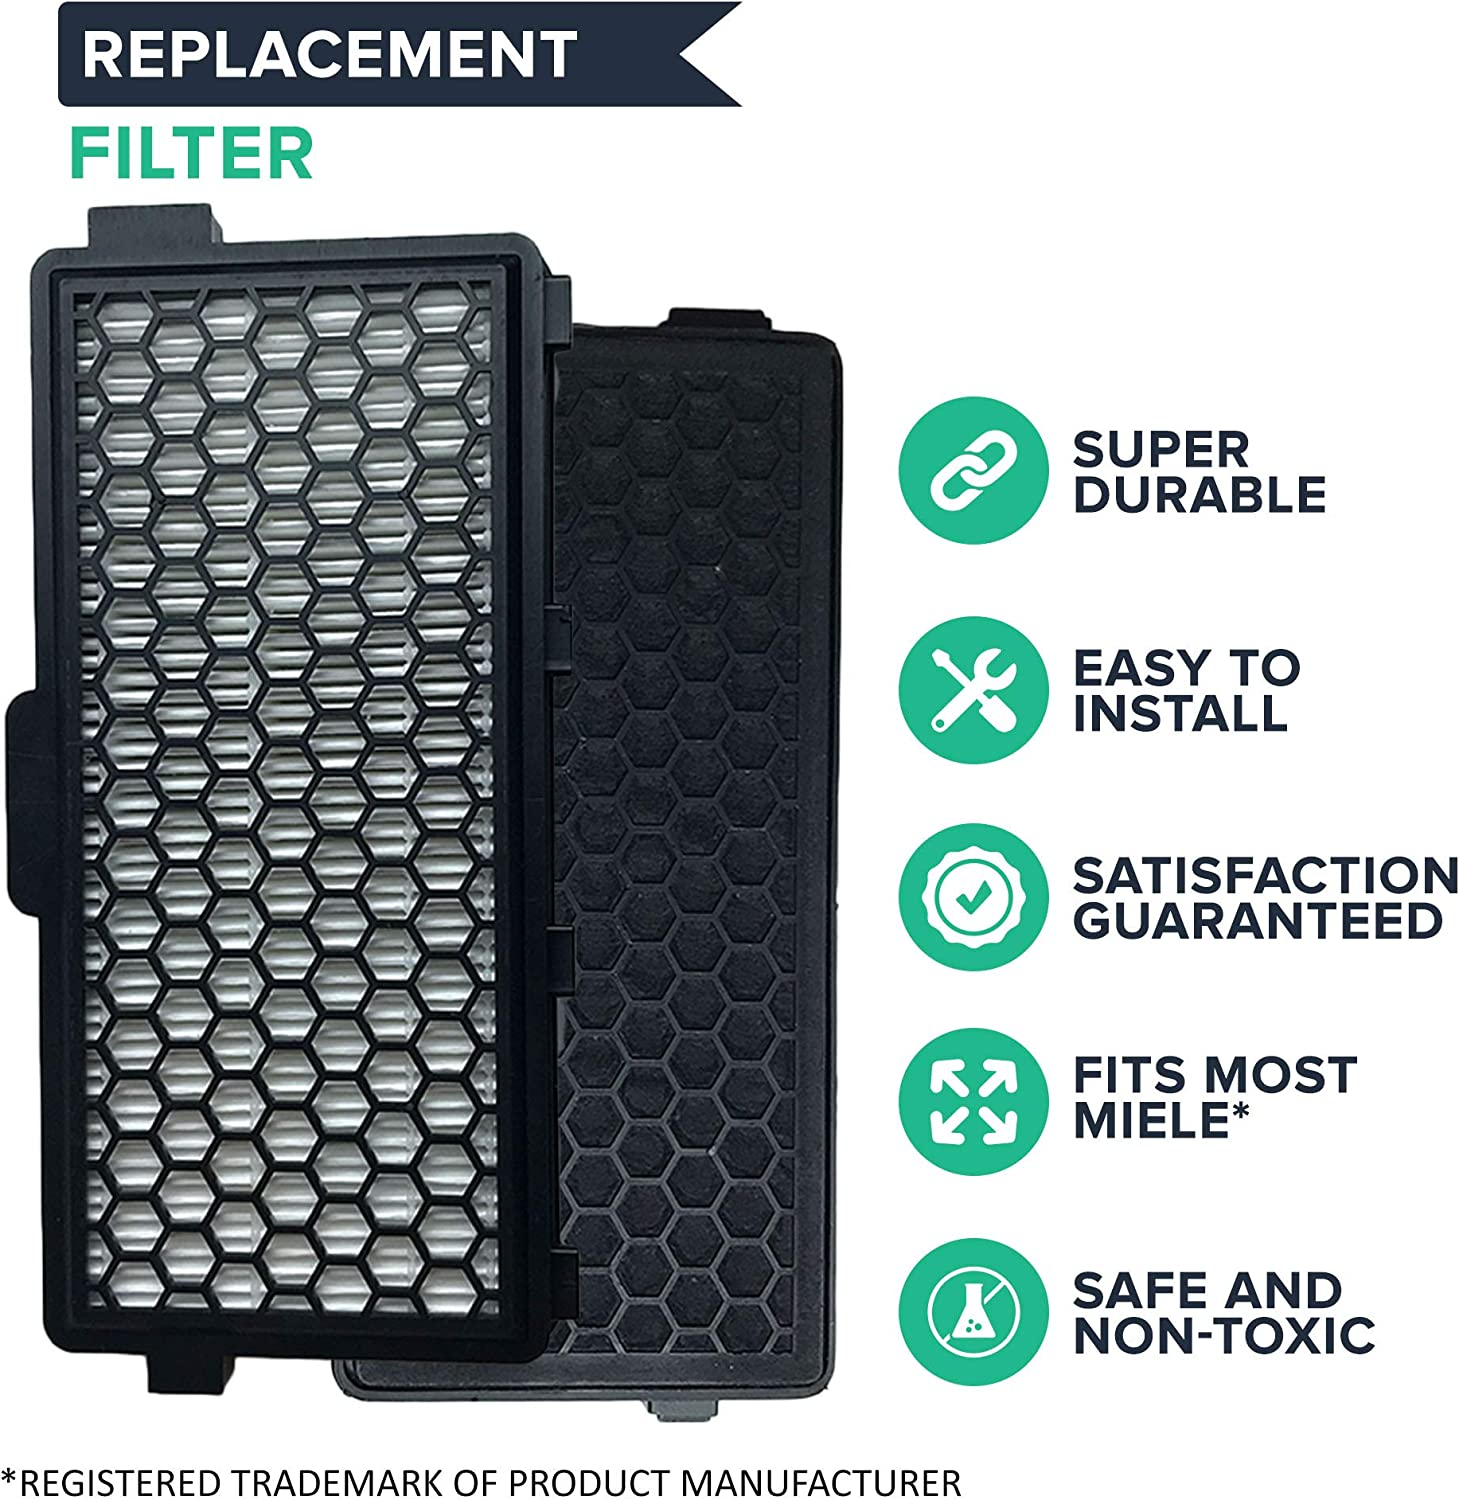 1 Miele S4000 /& S5000 HEPA Filter Designed To Fit Miele Galaxy S4000 /& S5000 Series Vacuums; Compare To Miele Part # SF AH50; Designed /& Engineered By Crucial Vacuum